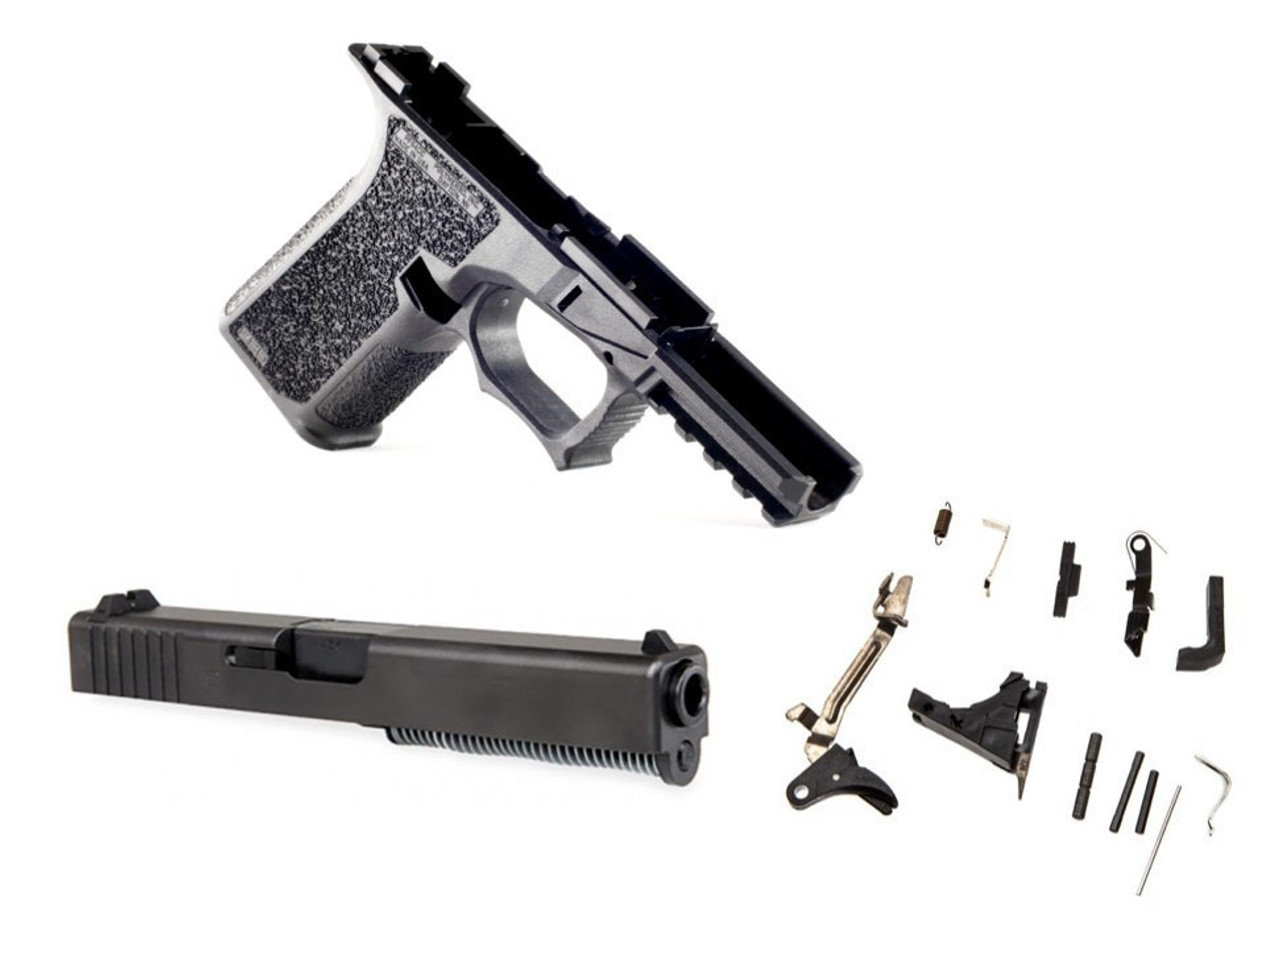 80% GLOCK 19 POLYMER80 LONE WOLF COMPLETE PISTOL BUILD KIT - BLACK